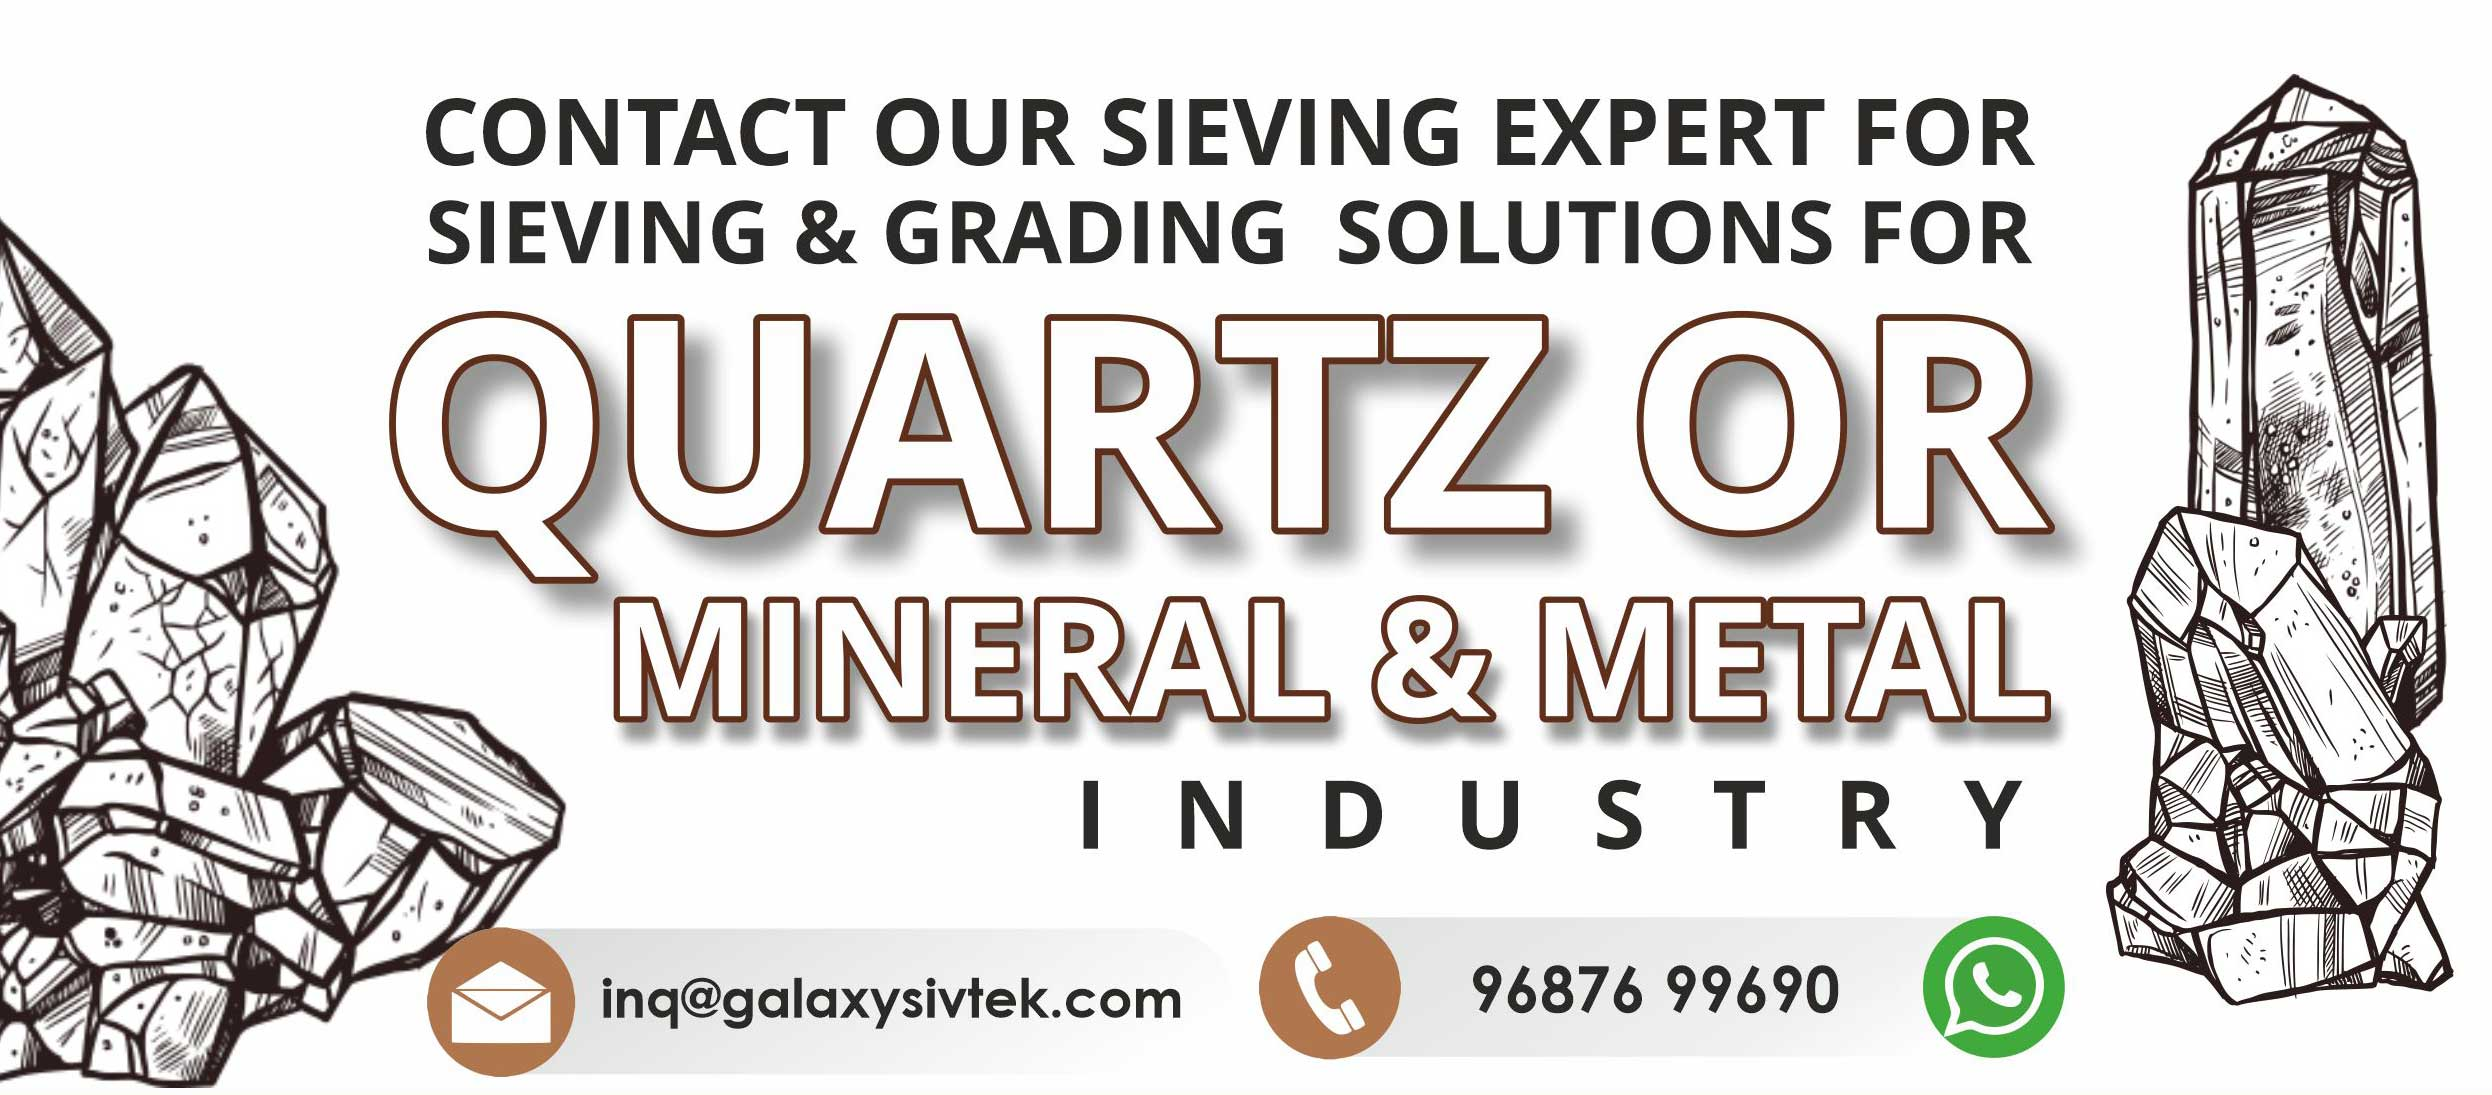 Contact us for quartz sieving and sorting solution